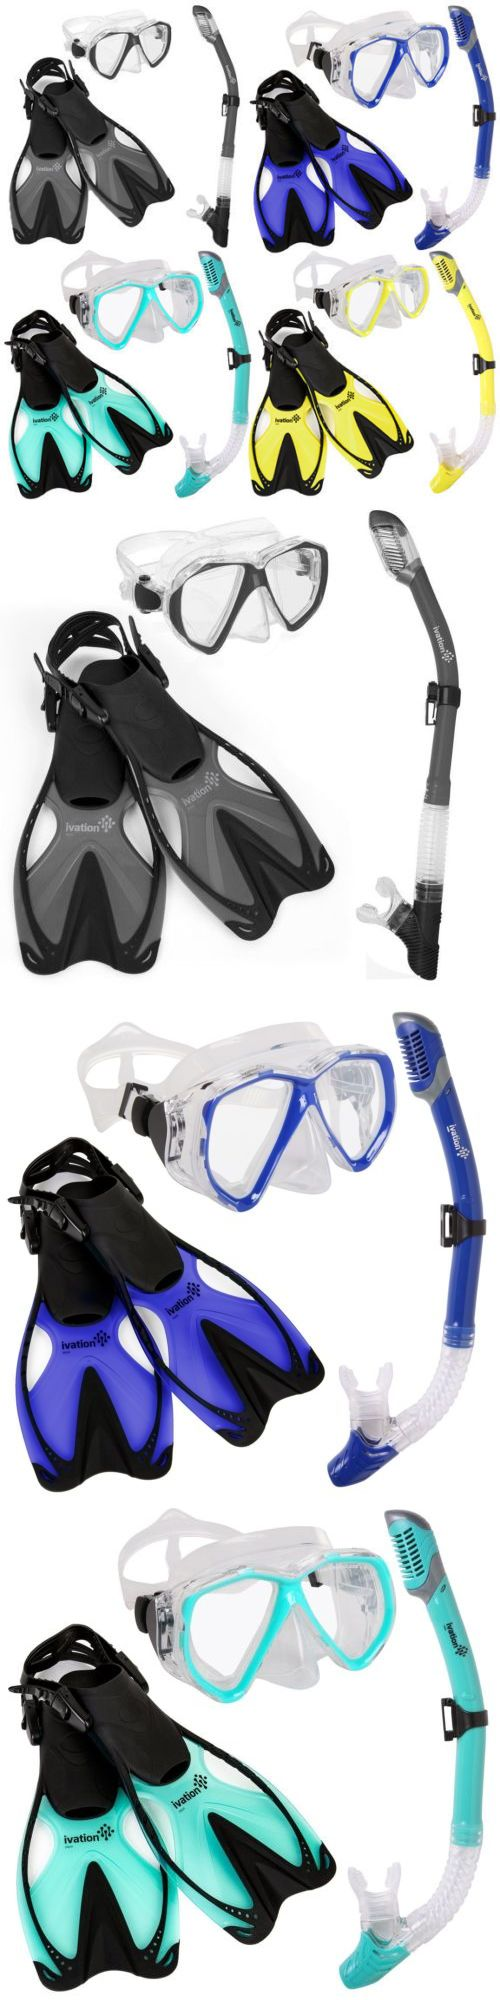 Snorkels and Sets 71162: Snorkel Gear - Snorkeling Mask, Dry Snorkel, And Fins Set - Diving, Swimming -> BUY IT NOW ONLY: $52.99 on eBay!